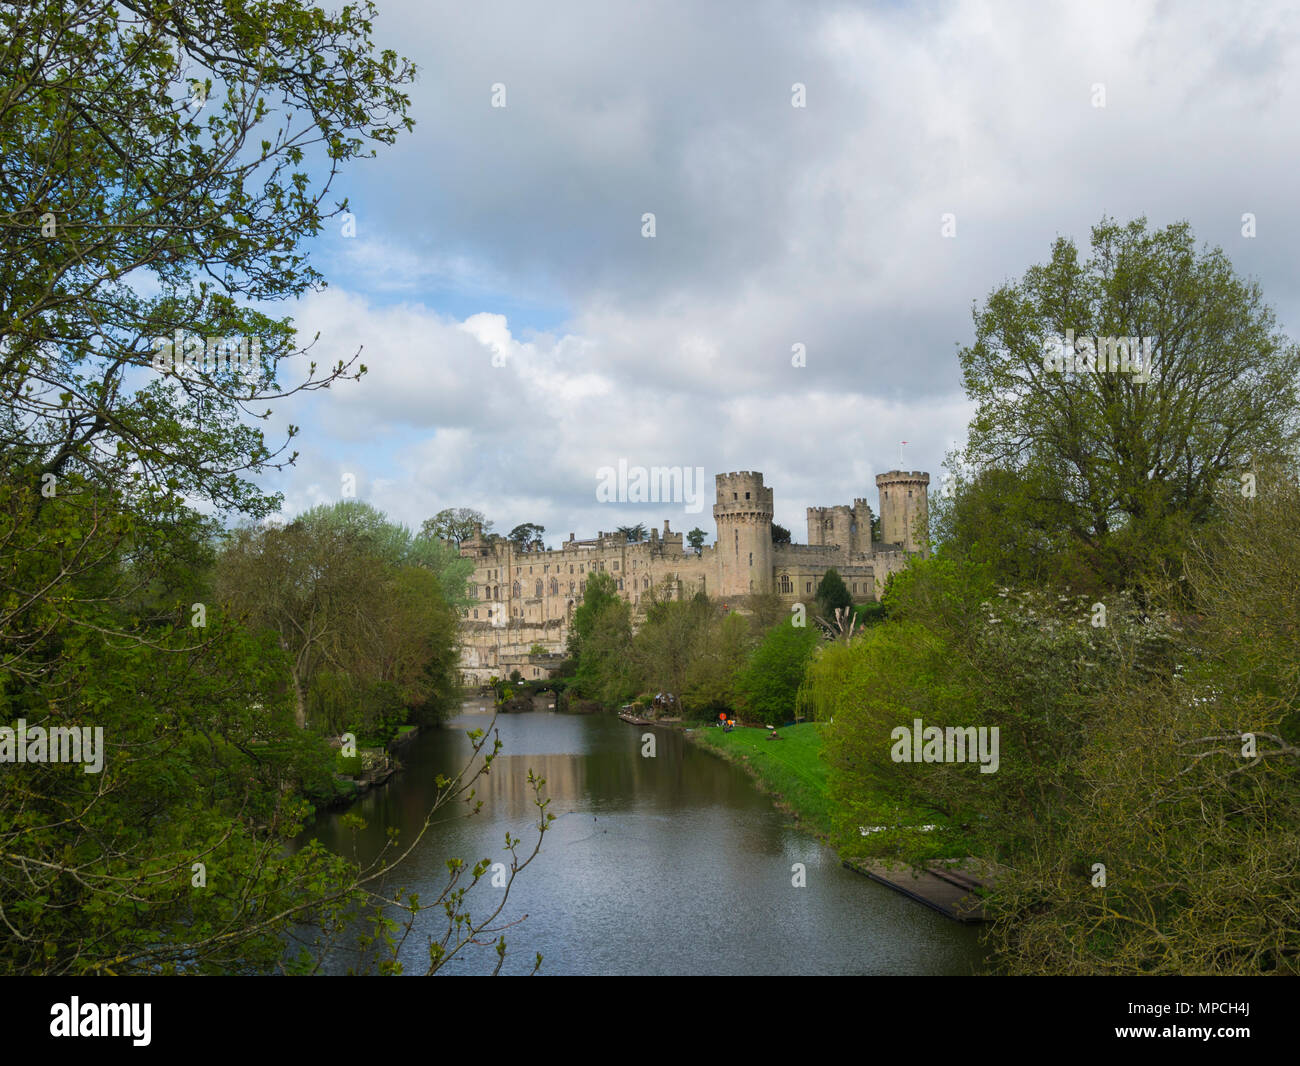 View along River Avon to the magnificent Warwick Castle Warwickshire England UK - Stock Image